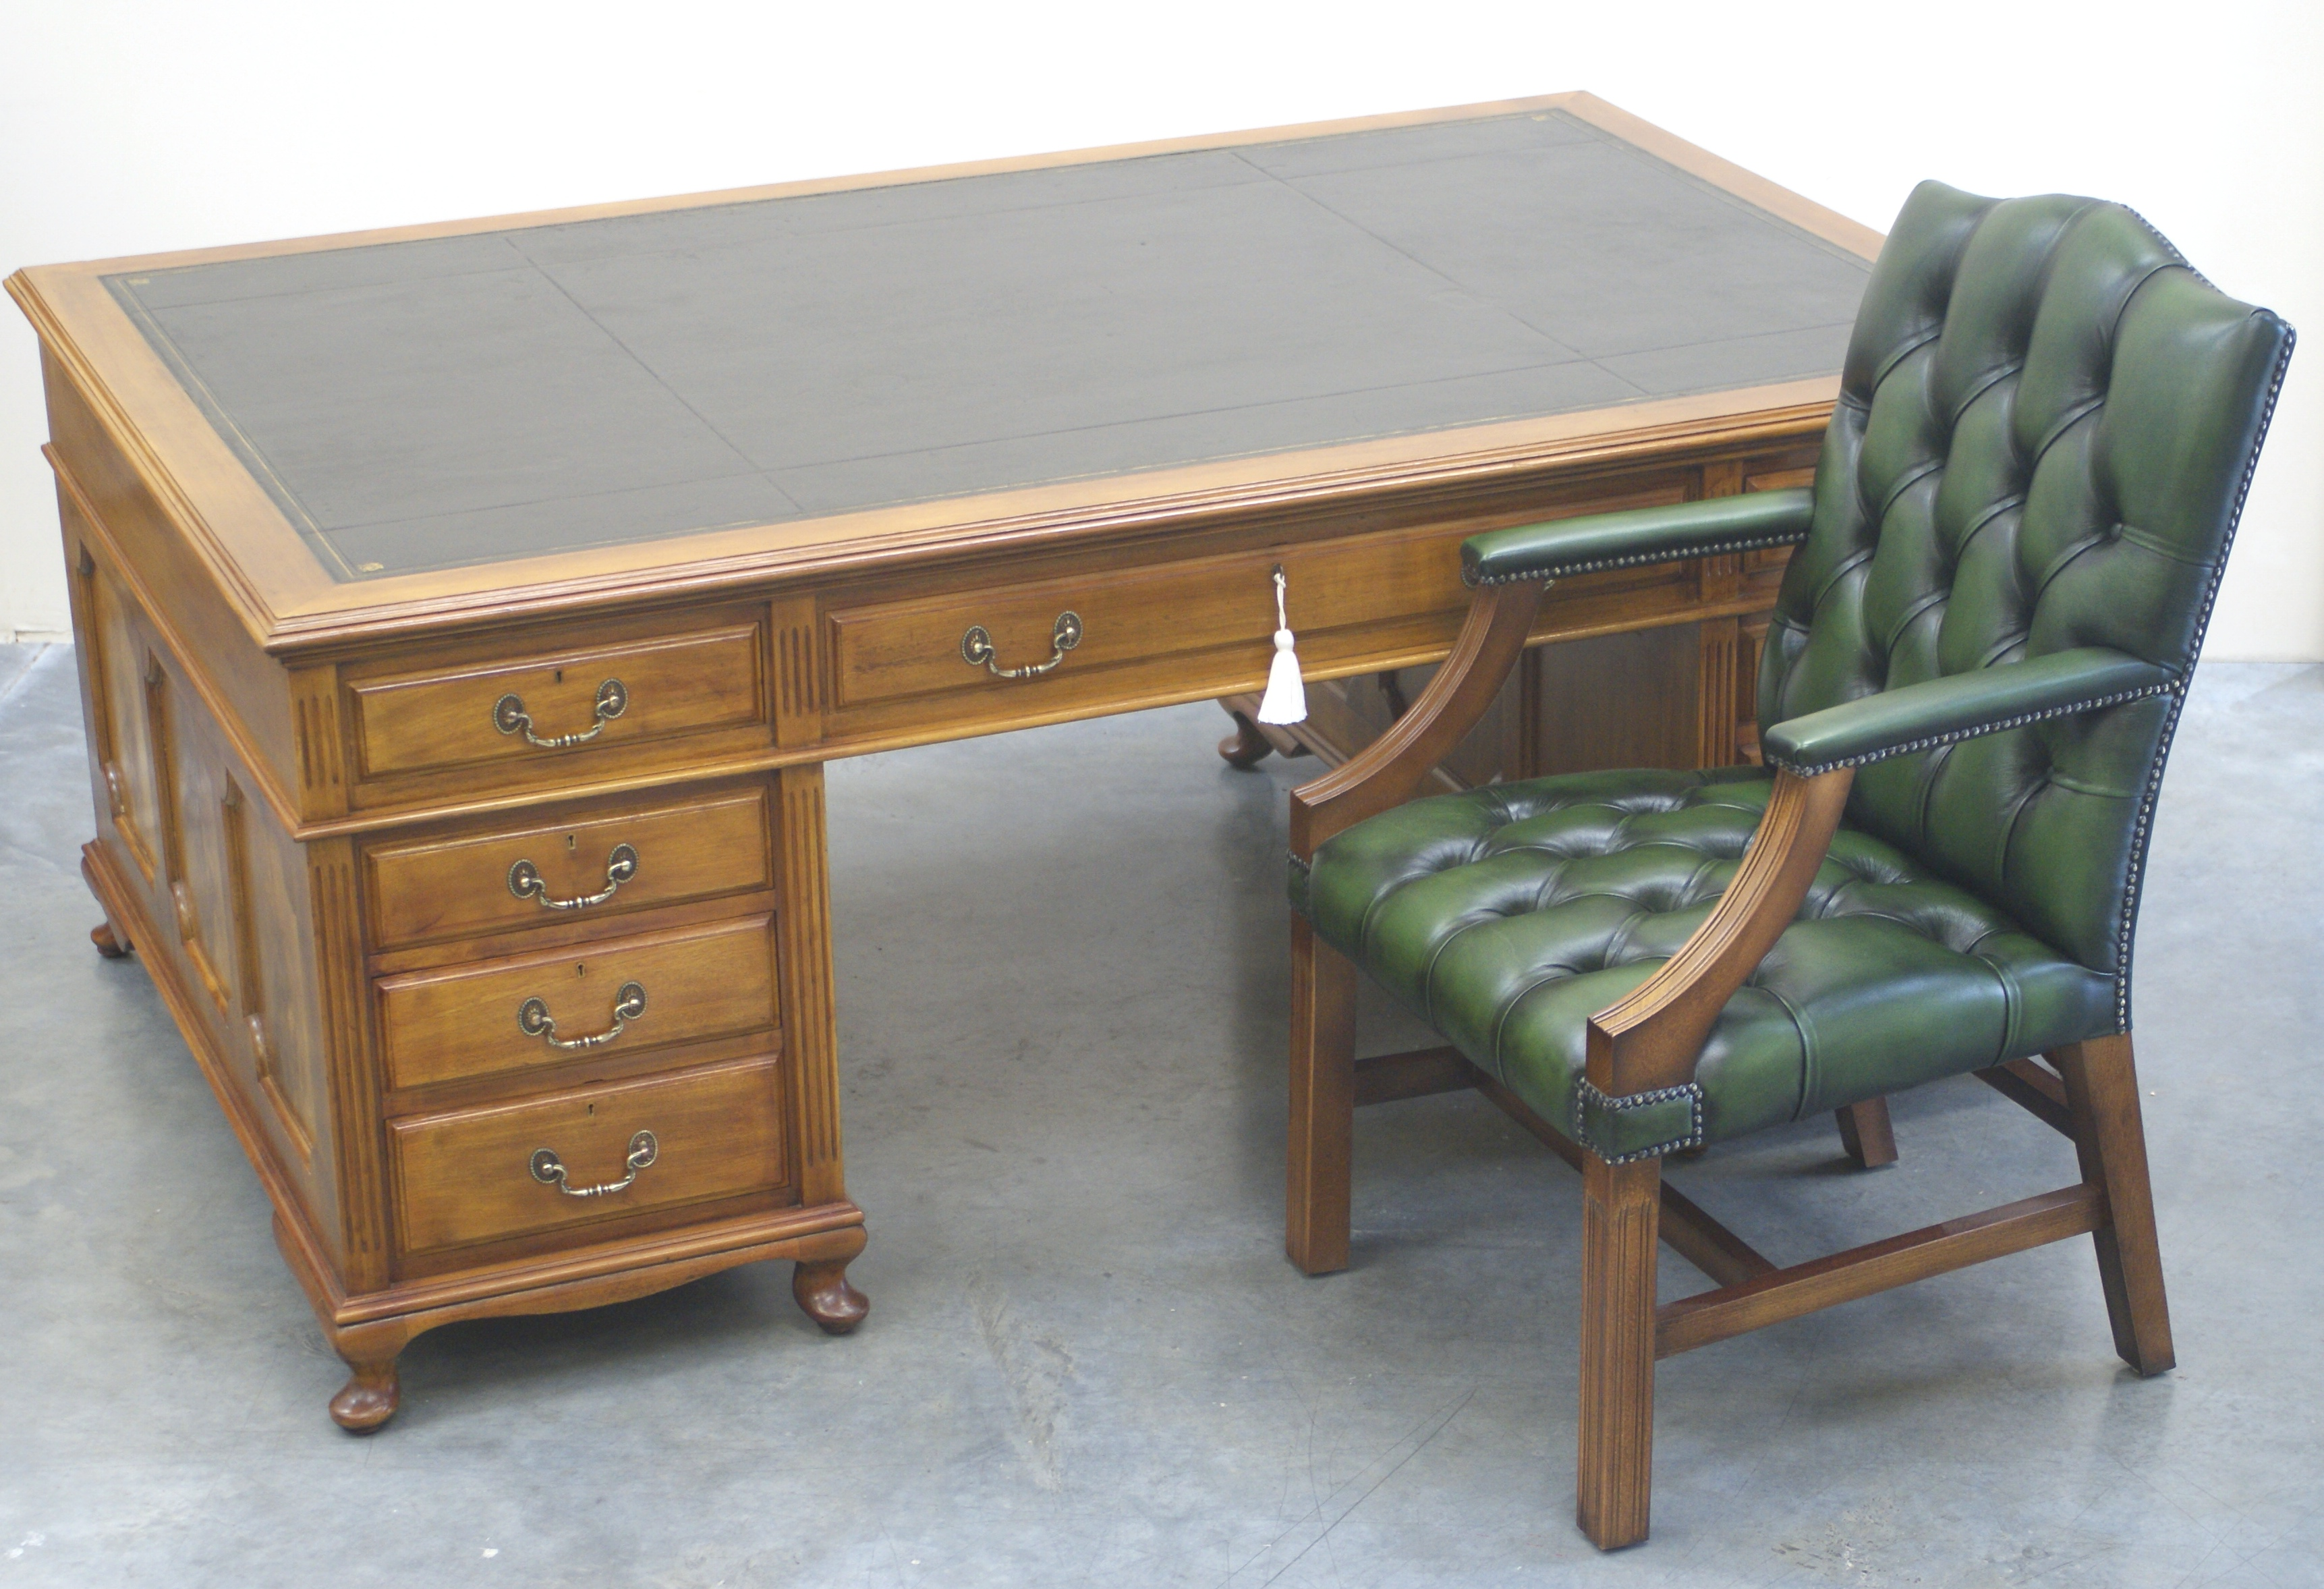 Antique Large Mahogany Partners Desk 1019 For Sale. Keyboard Tray For Glass Top Desk. Desk With Wheels. 8 Person Round Table. Booz Allen Help Desk Number. Designer Corner Desk. Tiffany Style Table Lamp. Power Adjustable Desk. Cooling Laptop Lap Desk